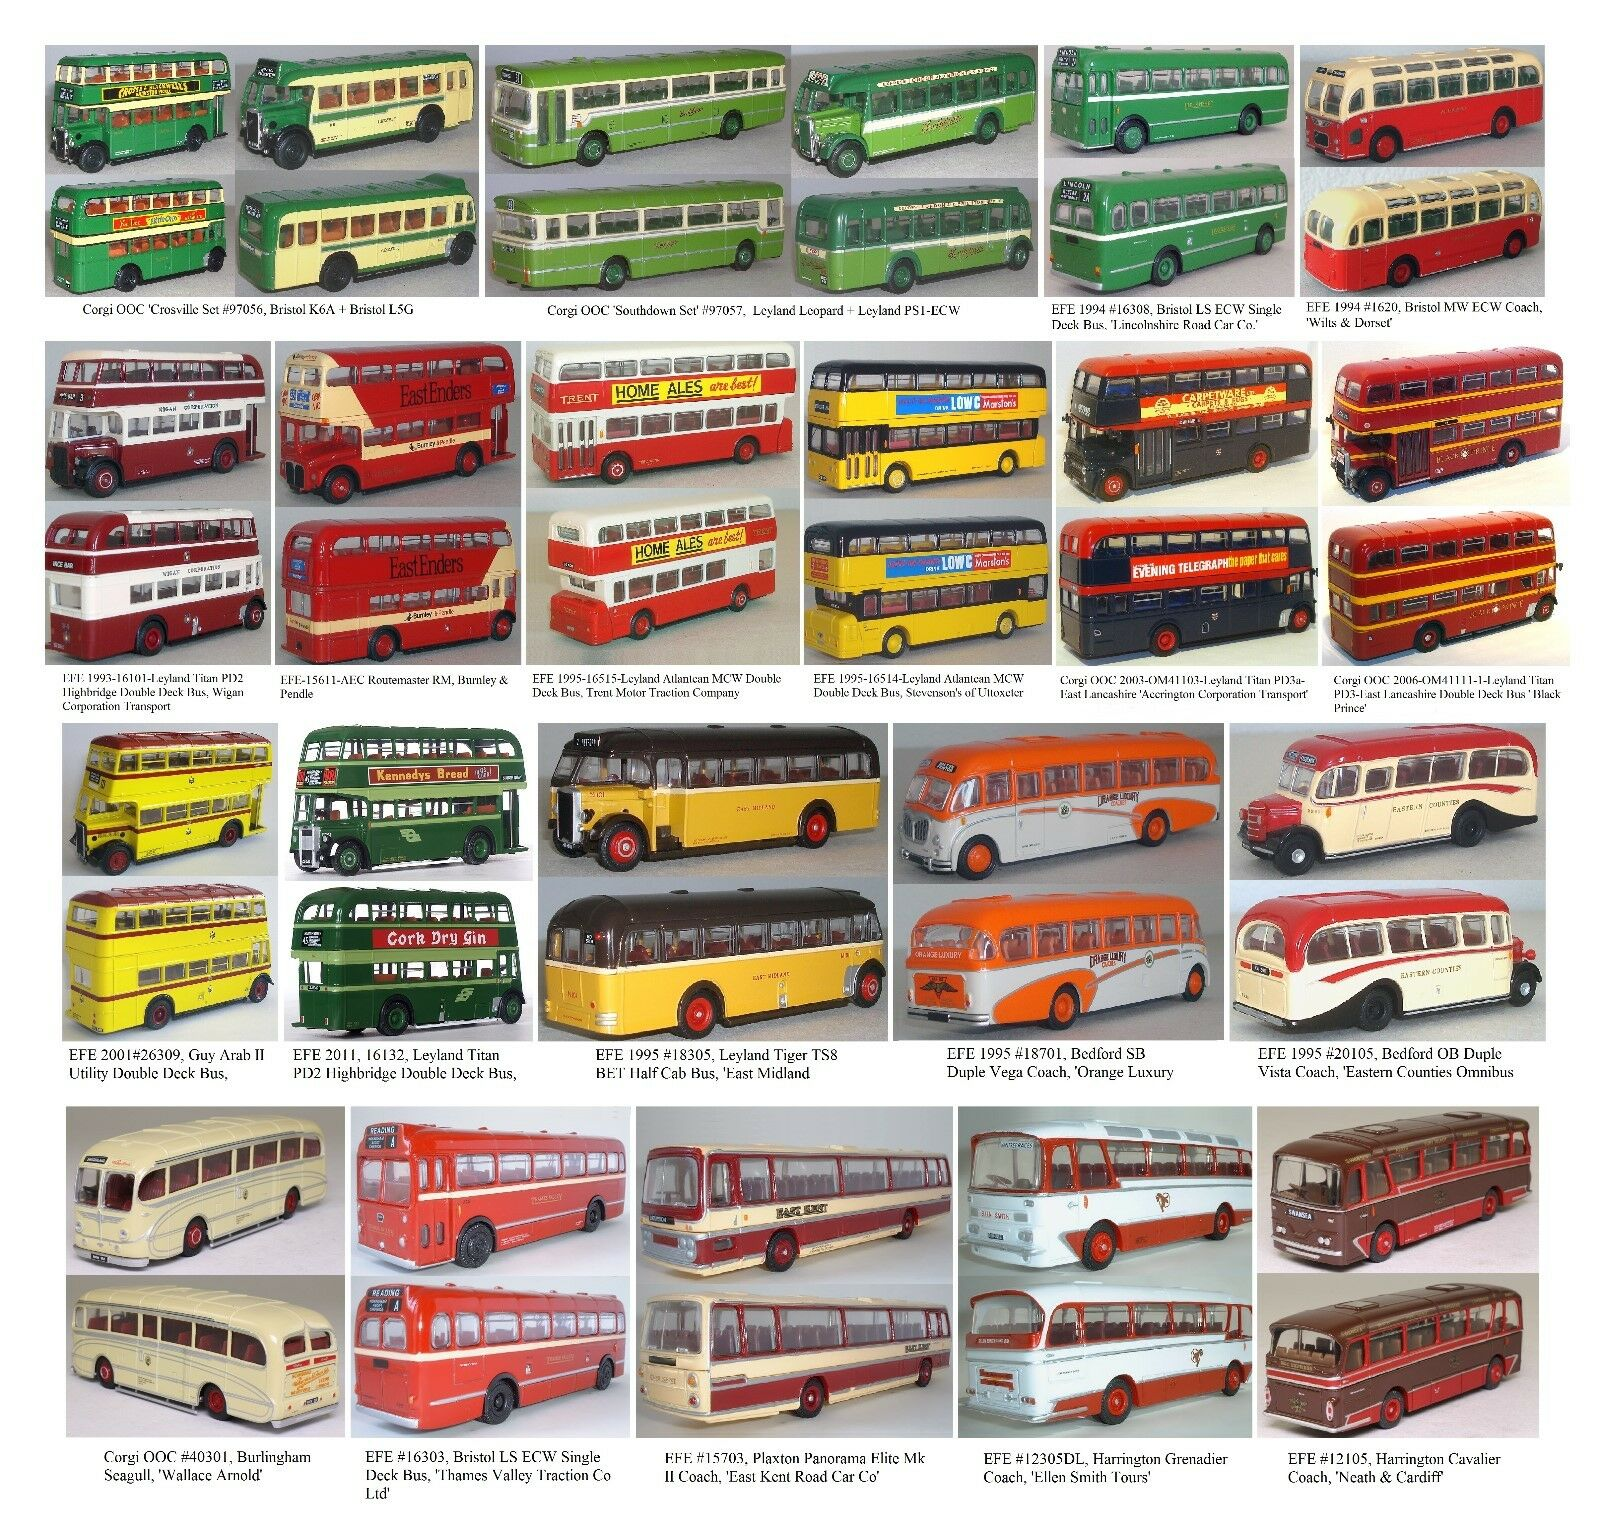 22 X Corgi OOC & EFE Buses  Lot of 22 1:76 British Buses